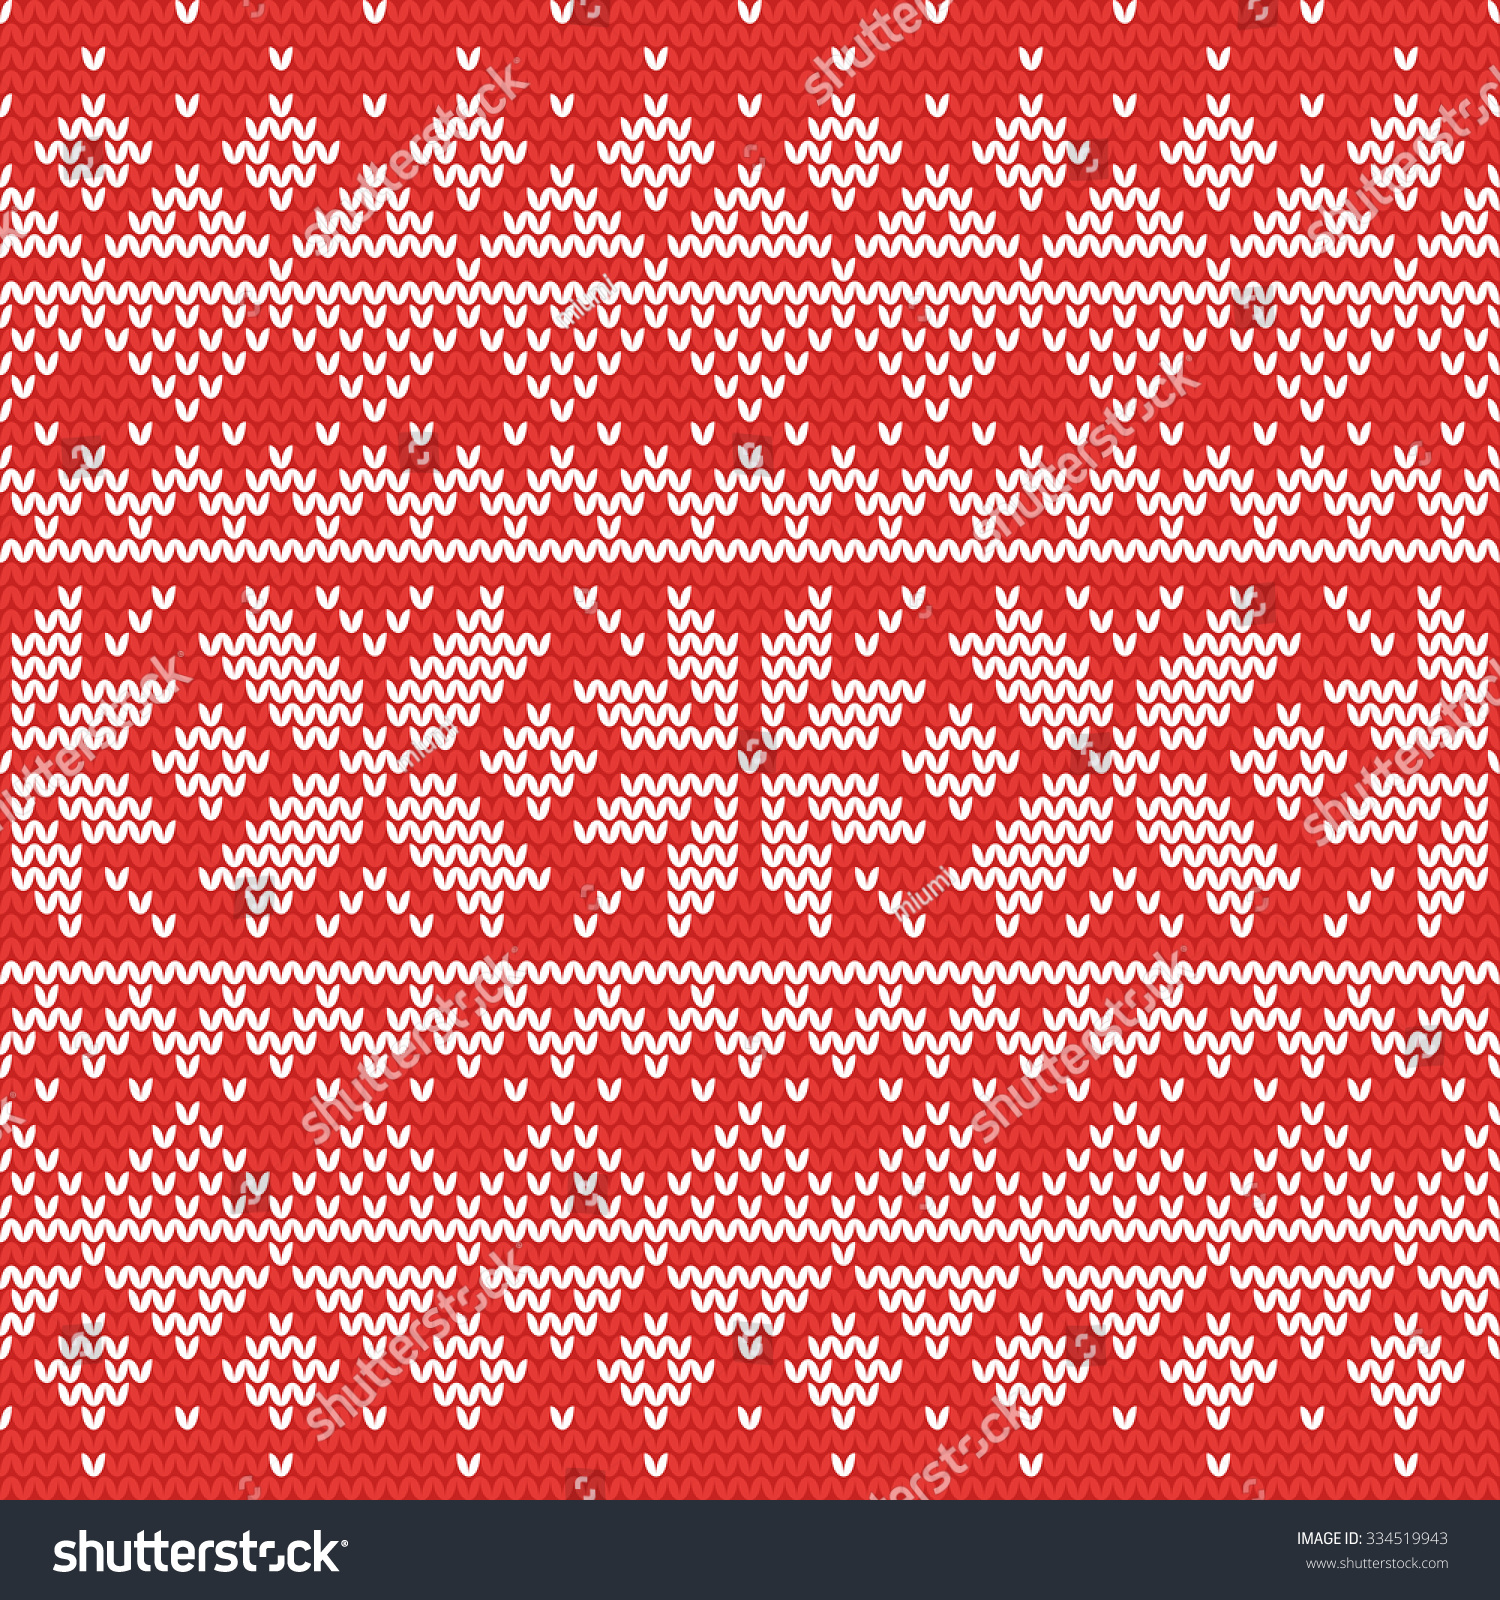 Seamless fir tree scandinavian pattern textile background wrapping - Christmas Knitting Seamless Pattern With Stars And Triangles Perfect For Wallpaper Wrapping Paper